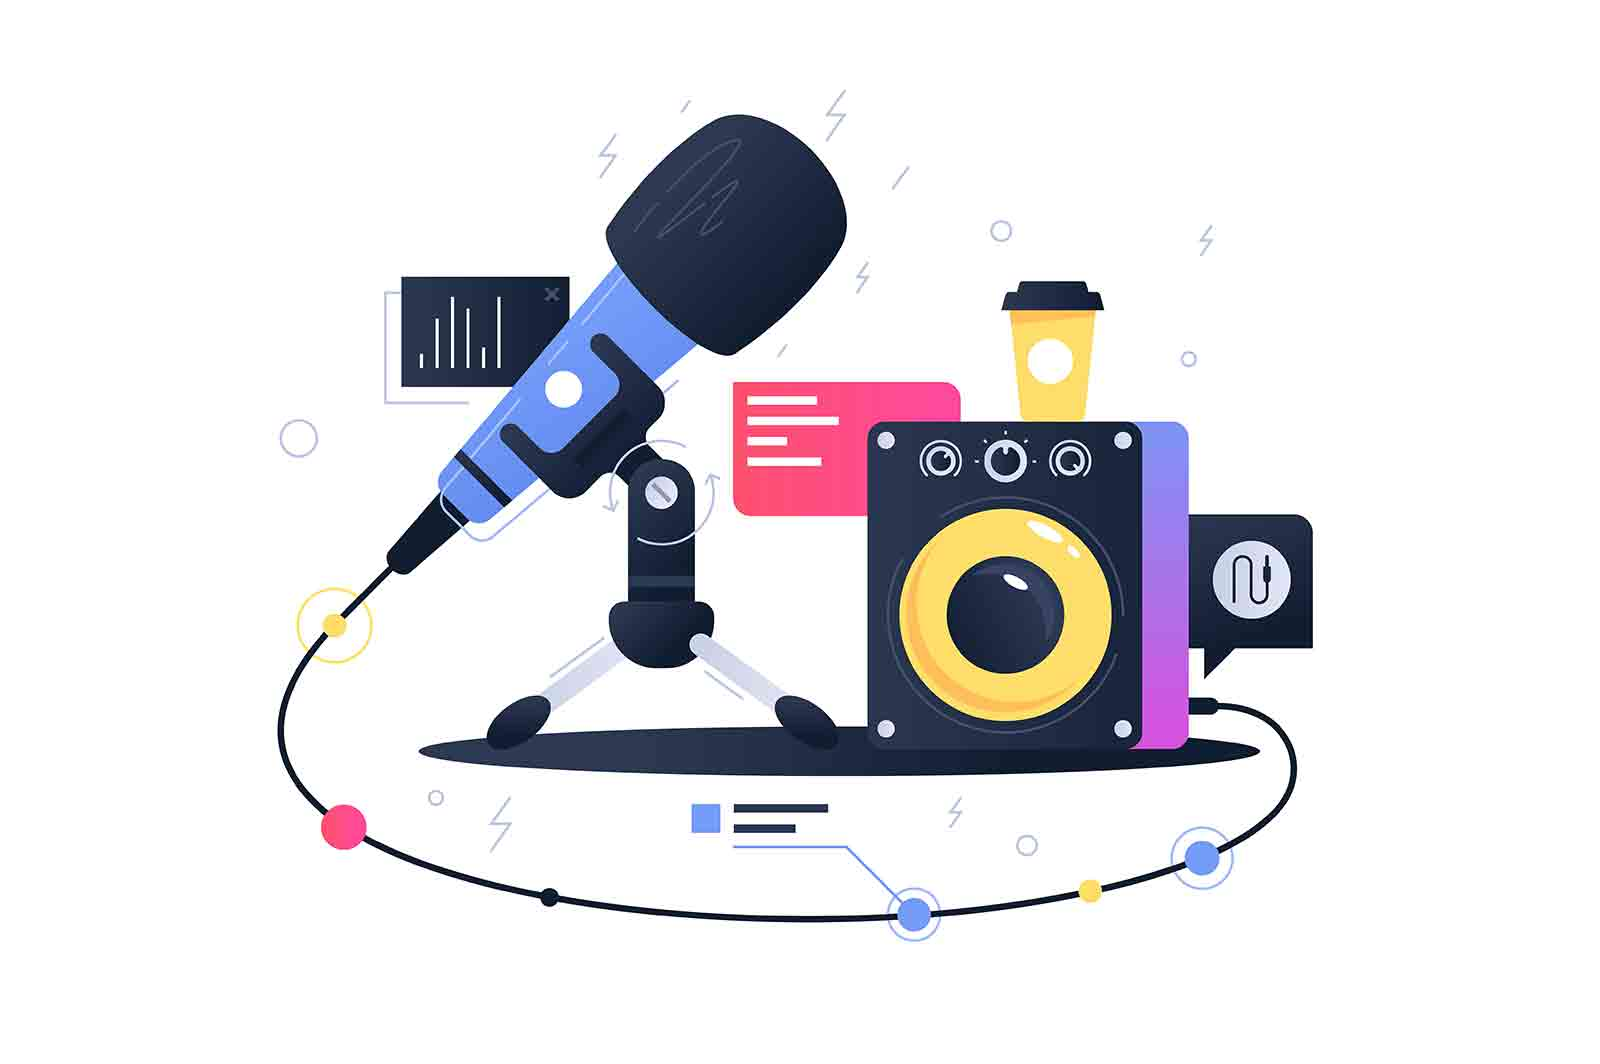 Microphone connecting with subwoofer speaker. Concept symbol device for recording music. Vector illustration.